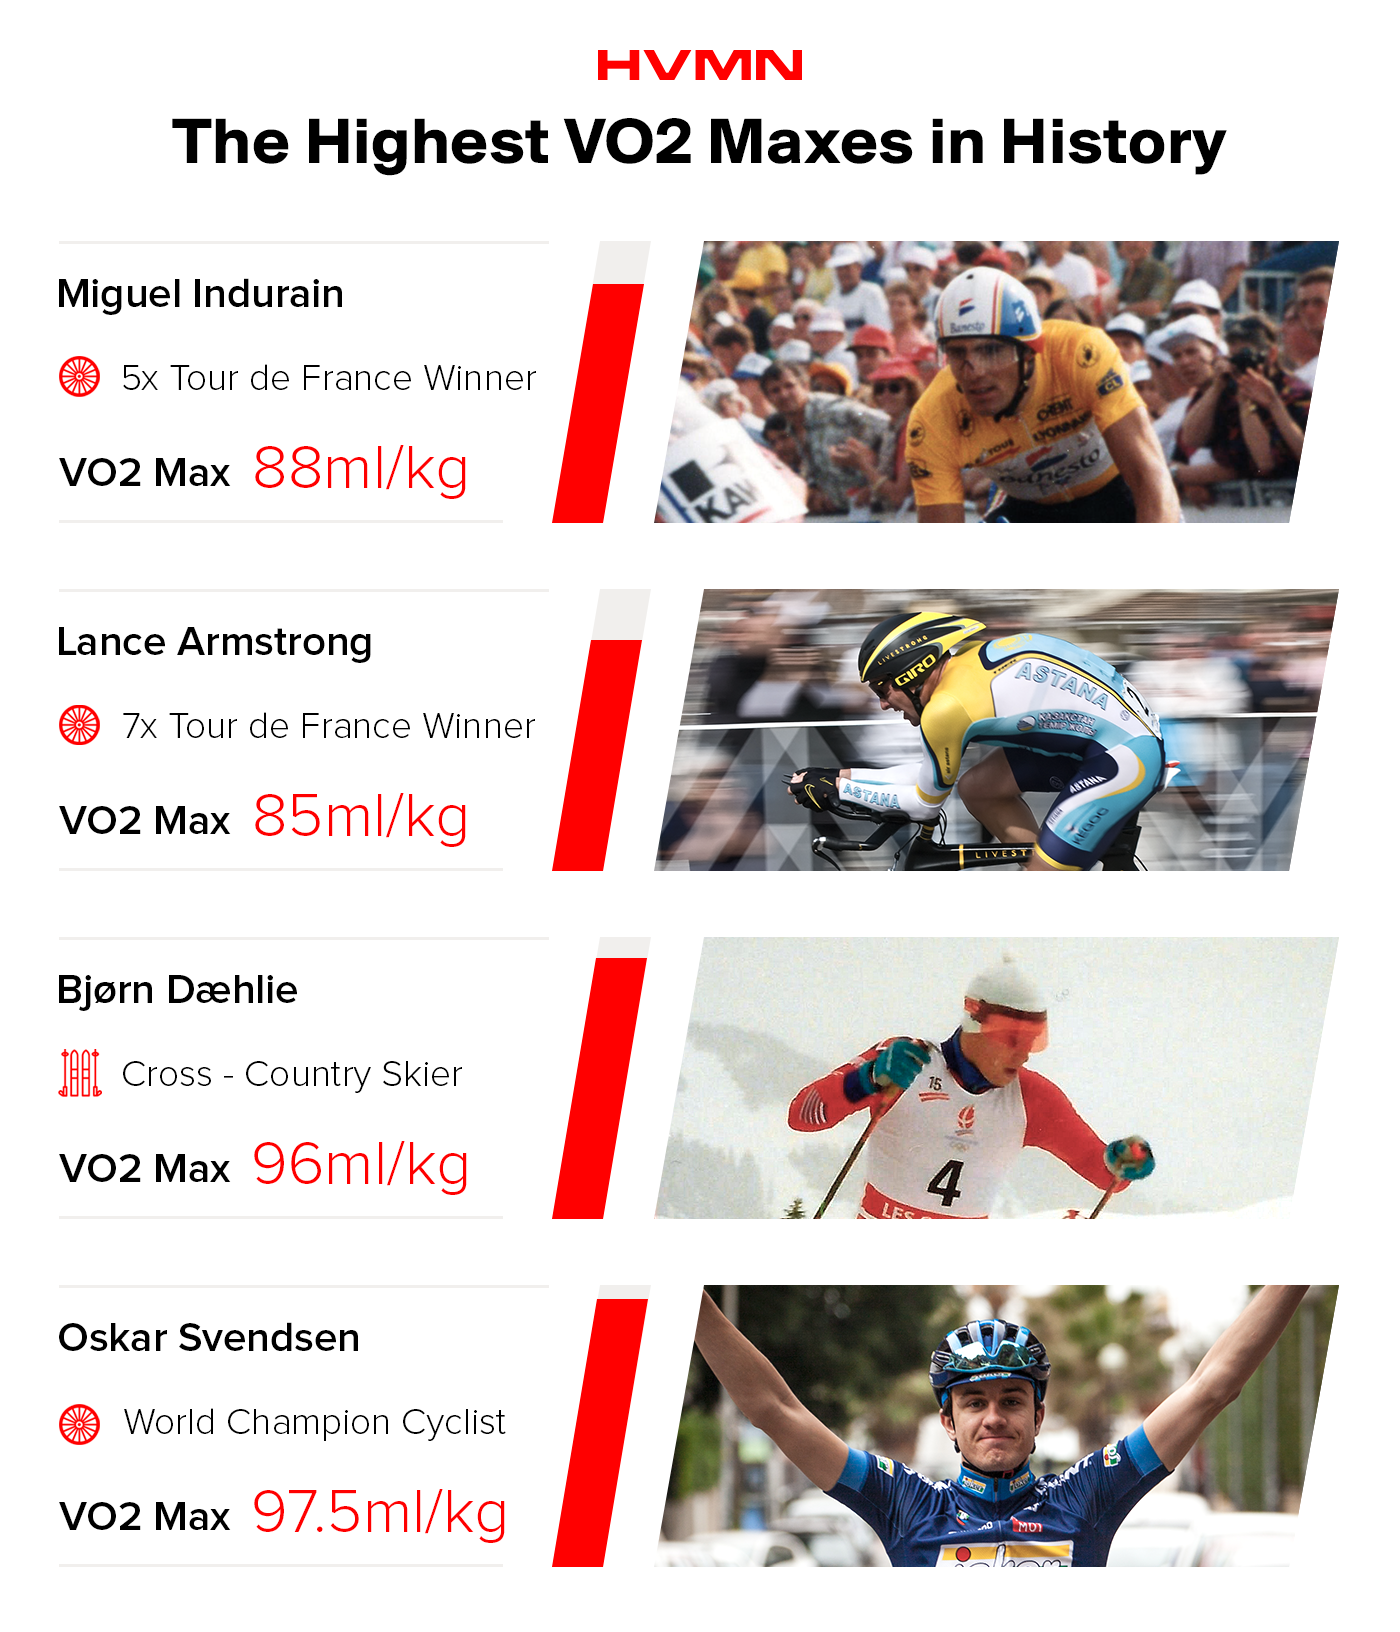 Images of some of the athletes with the highest VO2 maxes in history, which traditionally have been cyclists and cross country skiers.